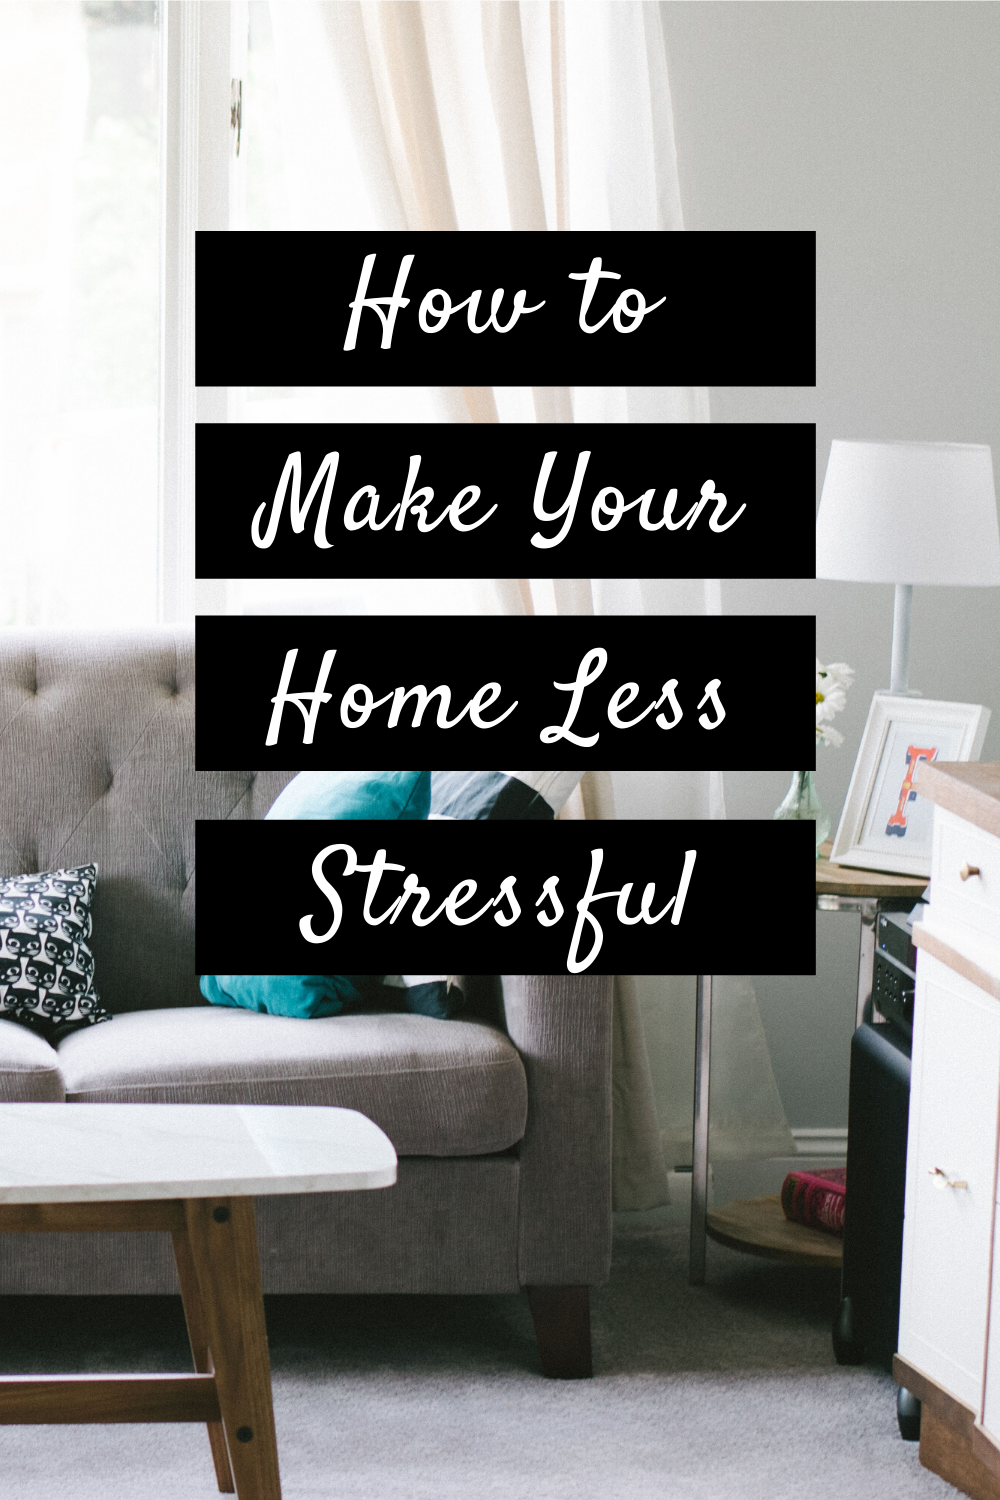 How to Make Your Home Less Stressful